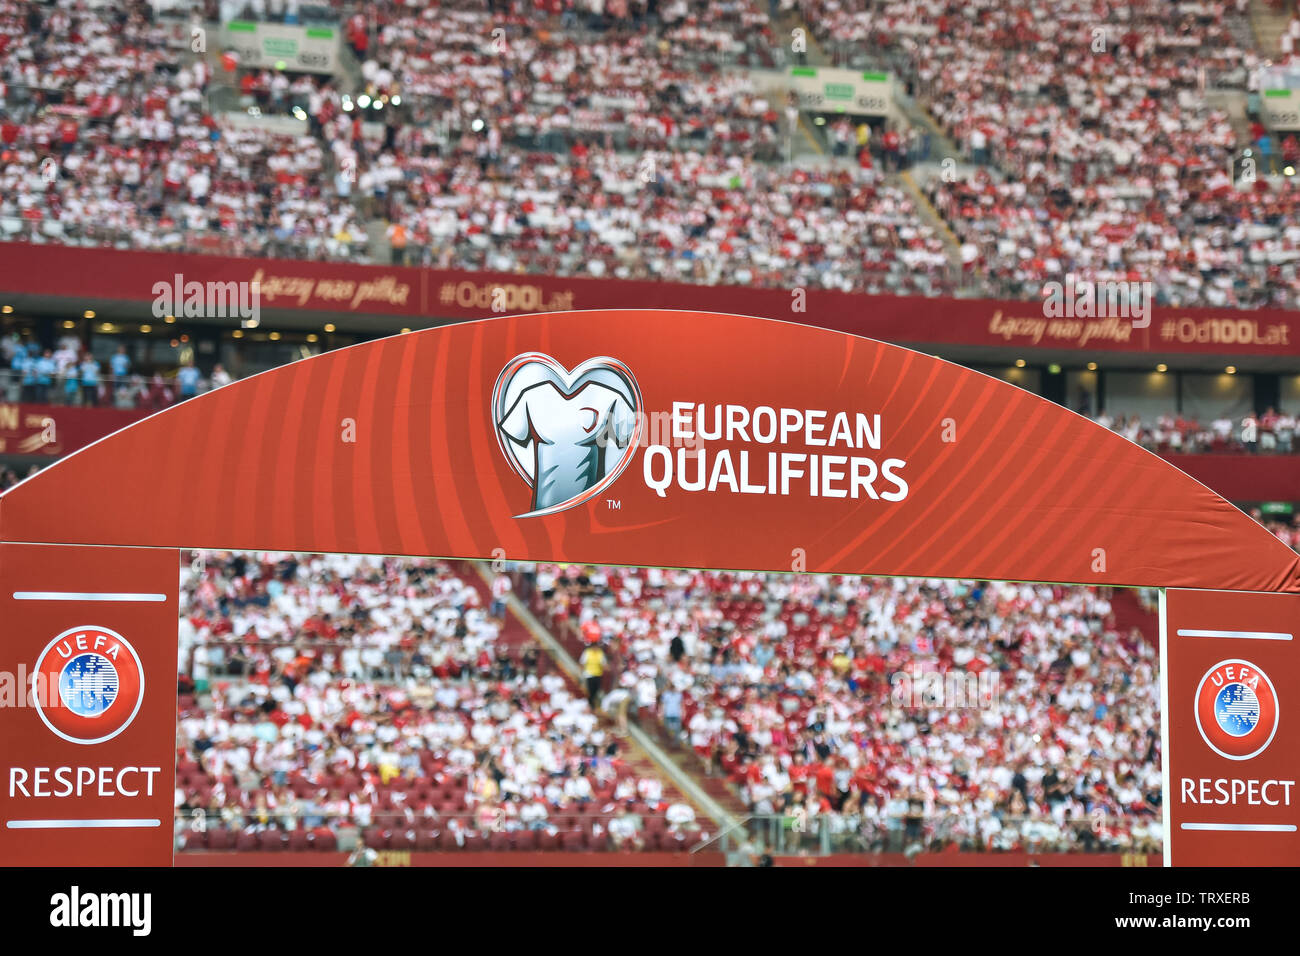 WARSAW, POLAND - JUNE 10, 2019: Qualifications Euro 2020  match Poland - Israel 4:0. Board with with logos and subtitles 'European Qualifiers' and 'UE - Stock Image